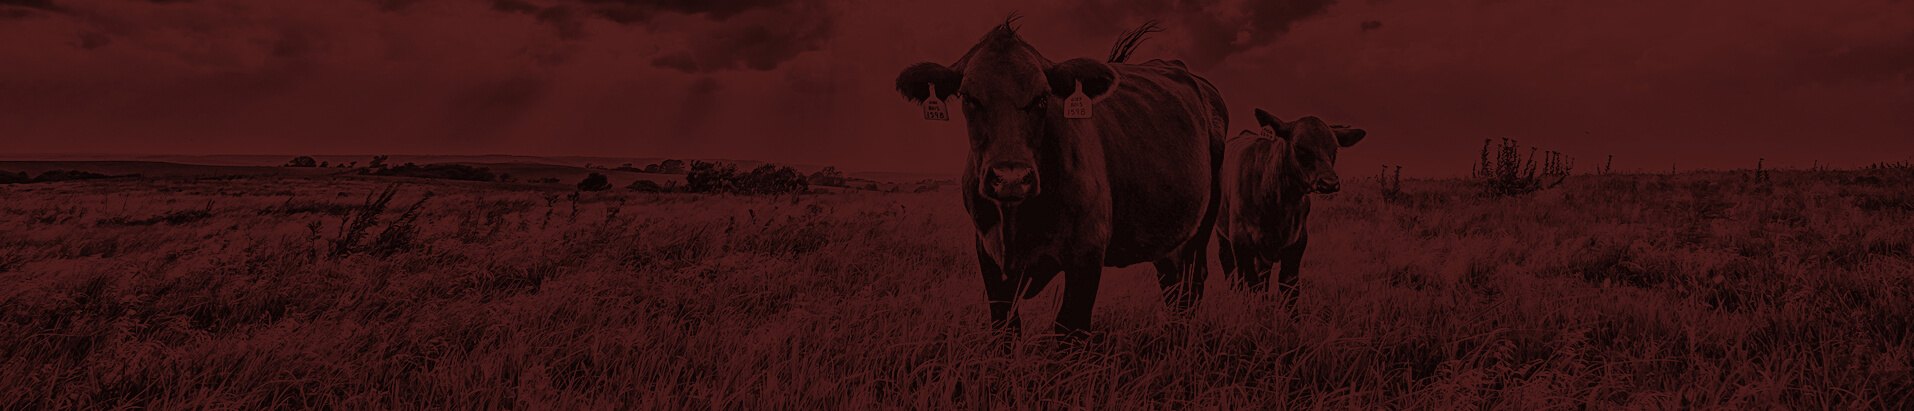 Two bulls standing in a field